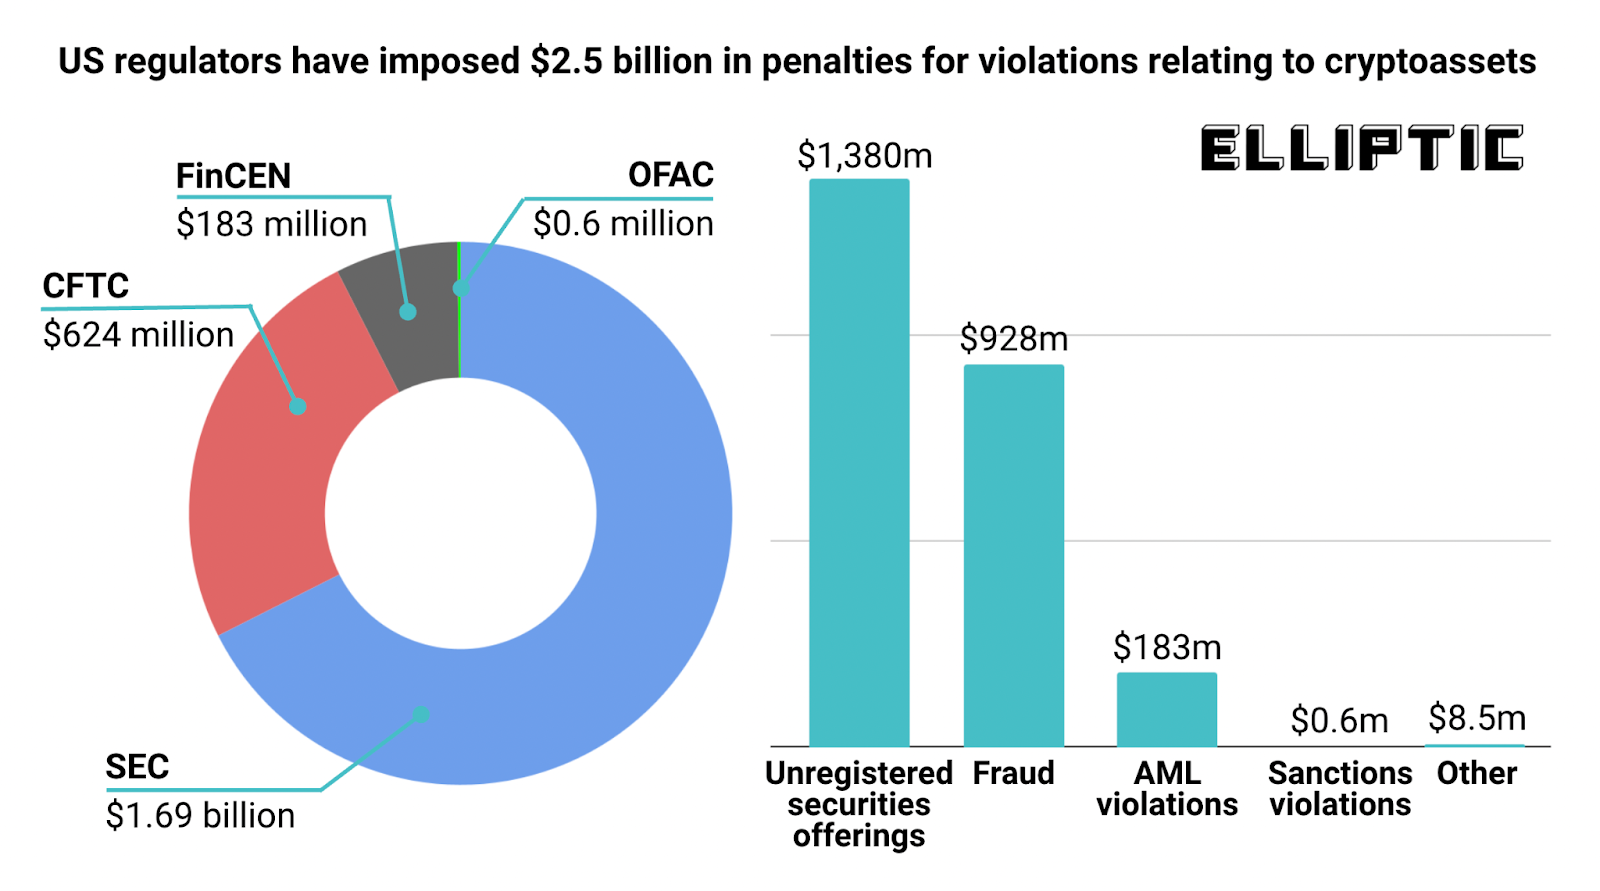 US Regulators Have Imposed $2.5 Billion Penalties on Crypto Firms and Individuals